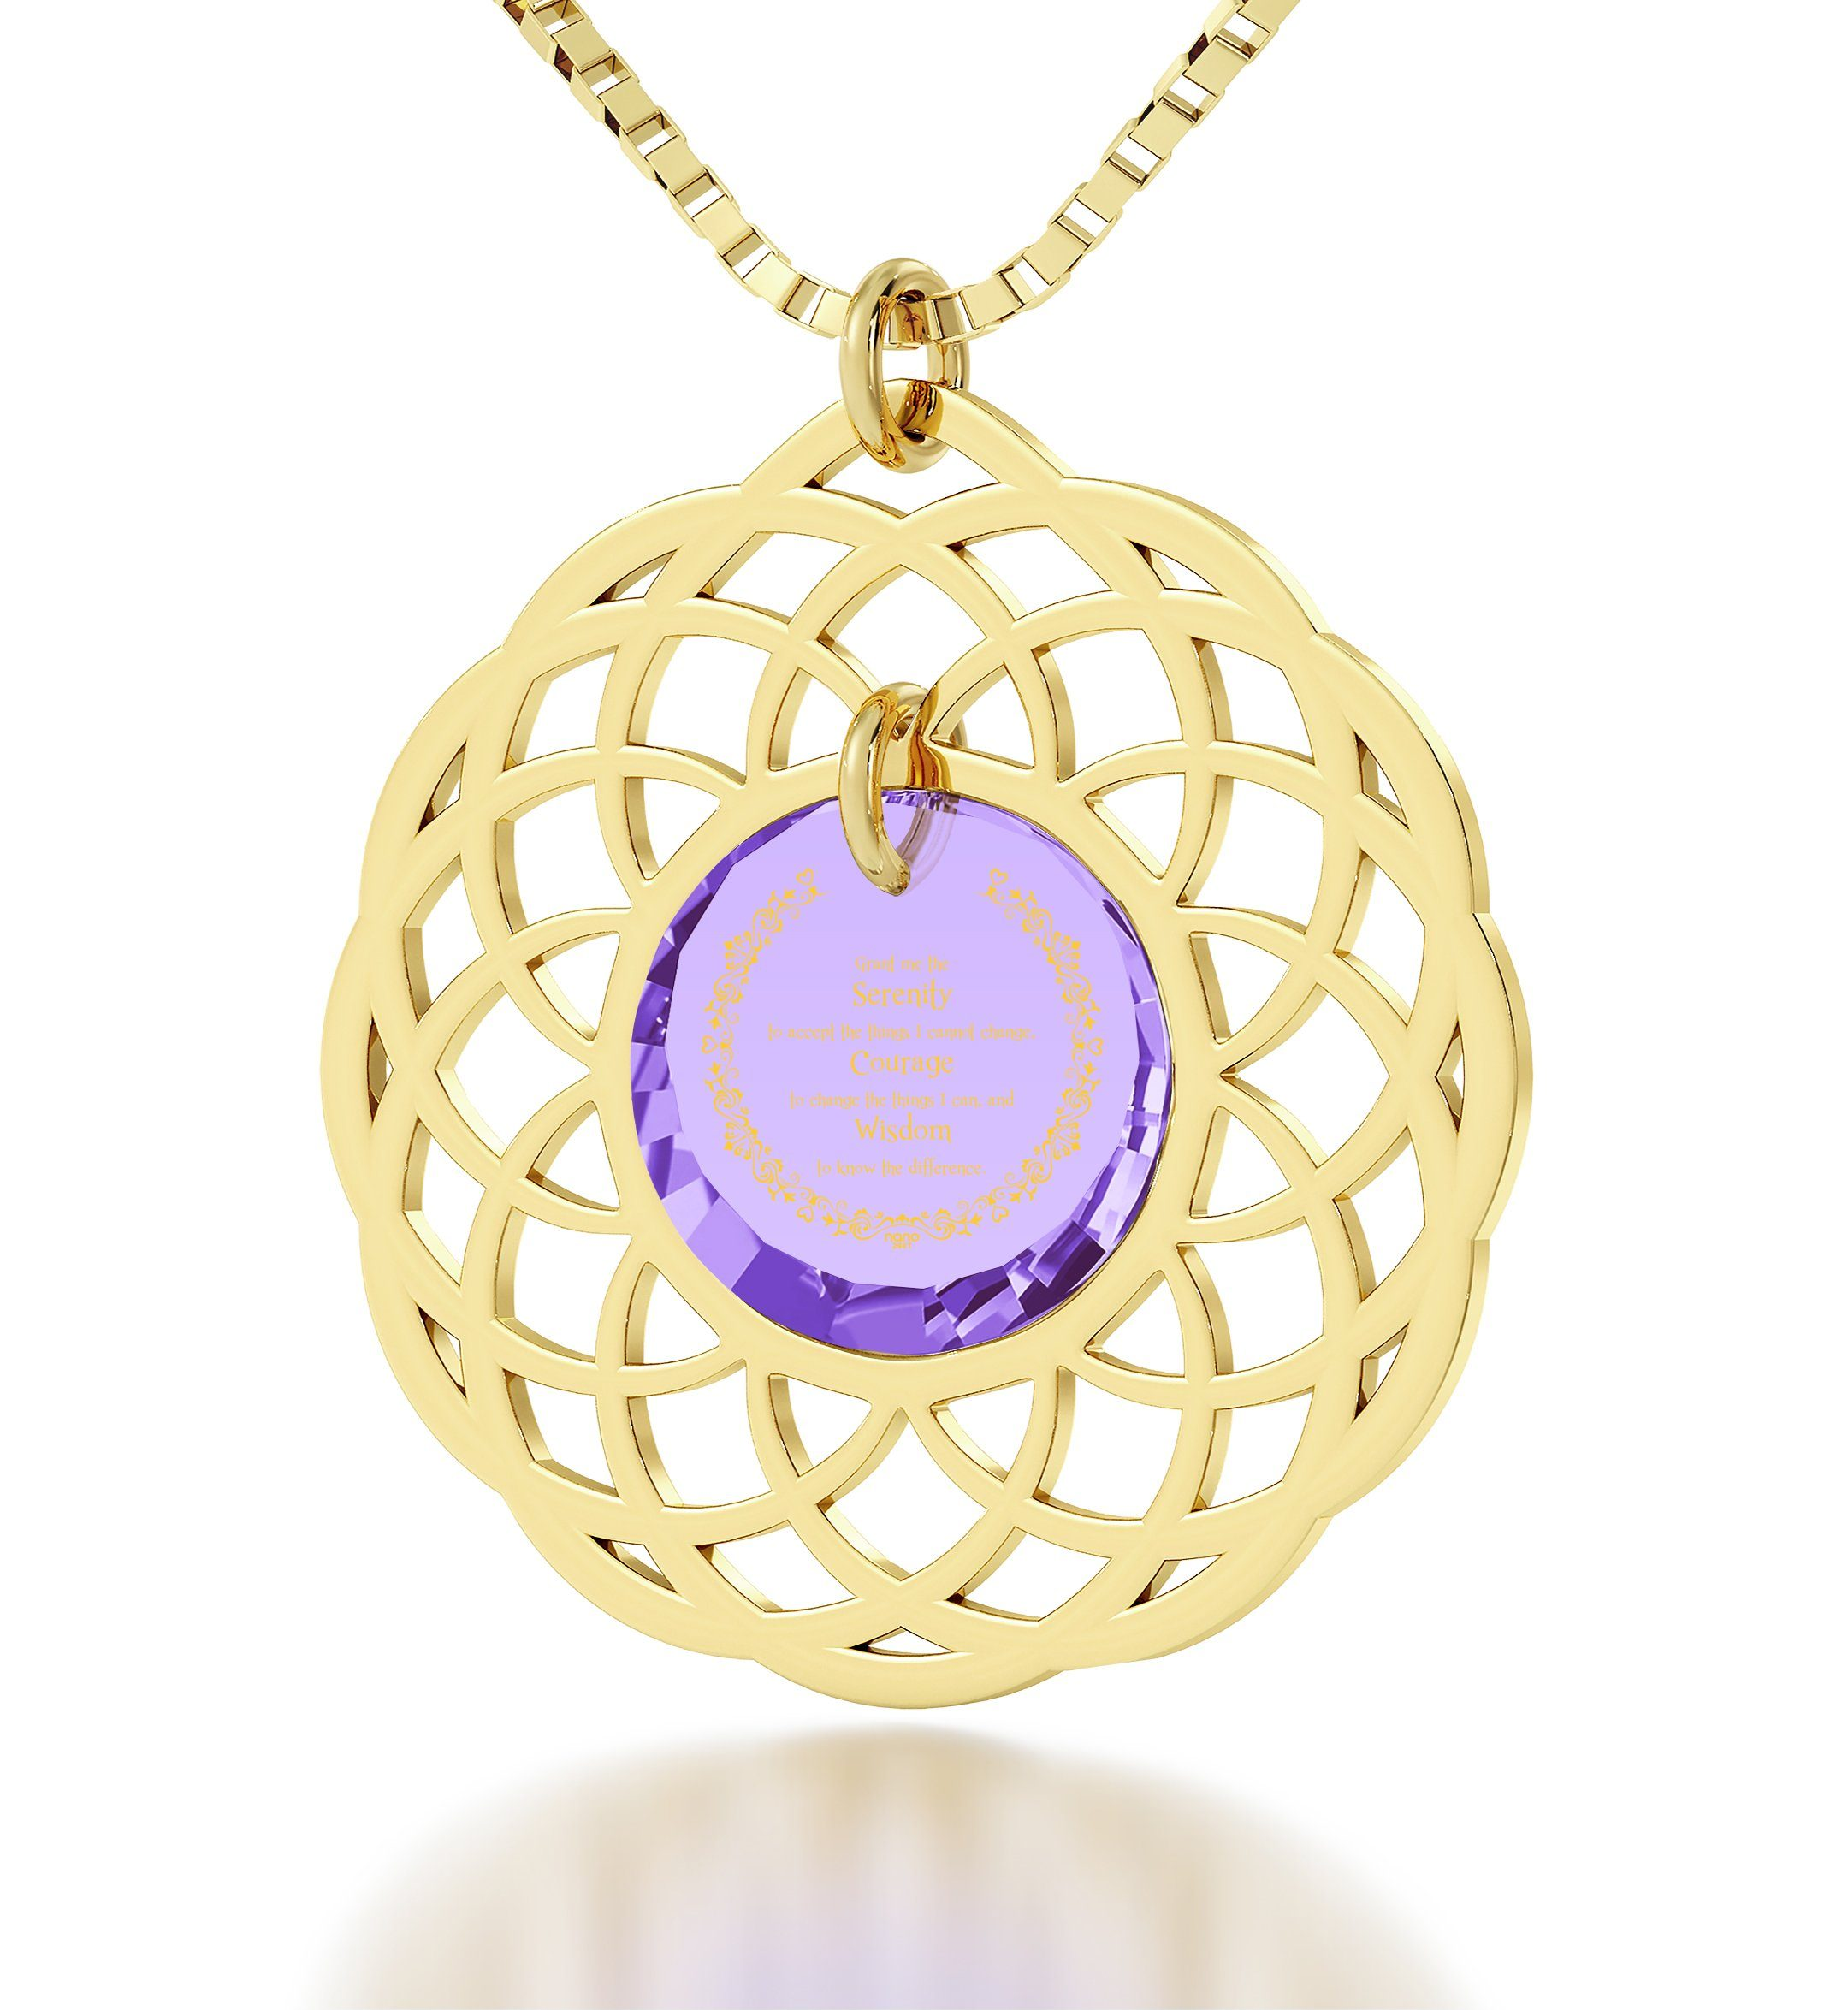 Serenity Prayer Necklace: Top Gifts for Wife, Presents for Sisters, Fine Gold Jewelry, Nano Jewelry